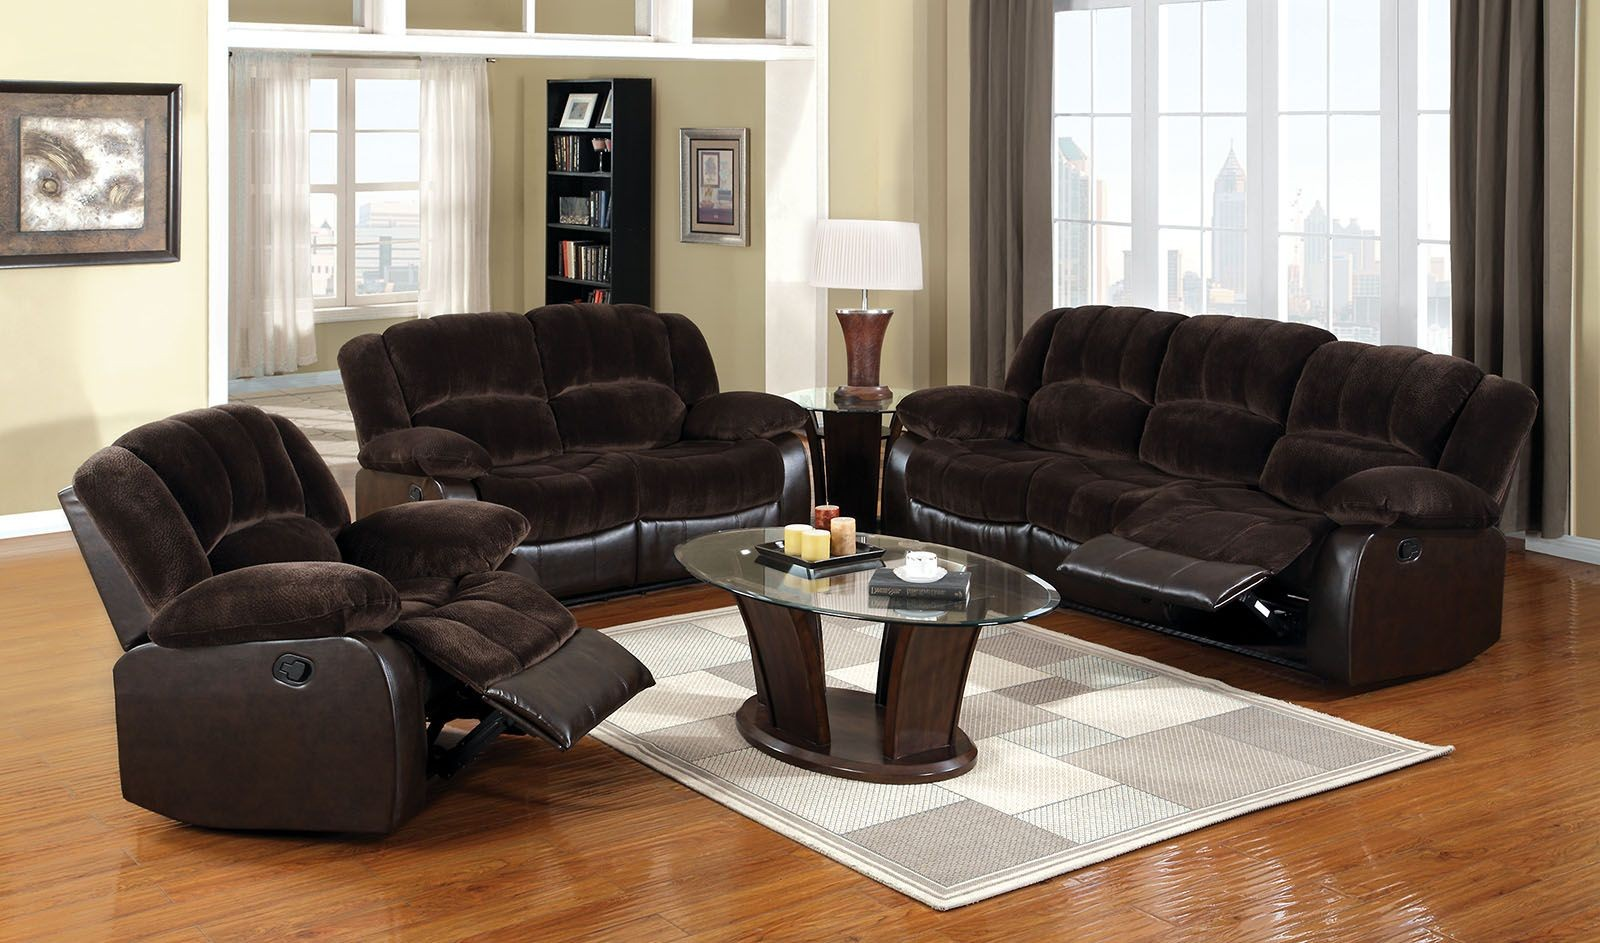 Winslow rustic brown reclining living room set cm6556 s for Cheap reclining living room sets